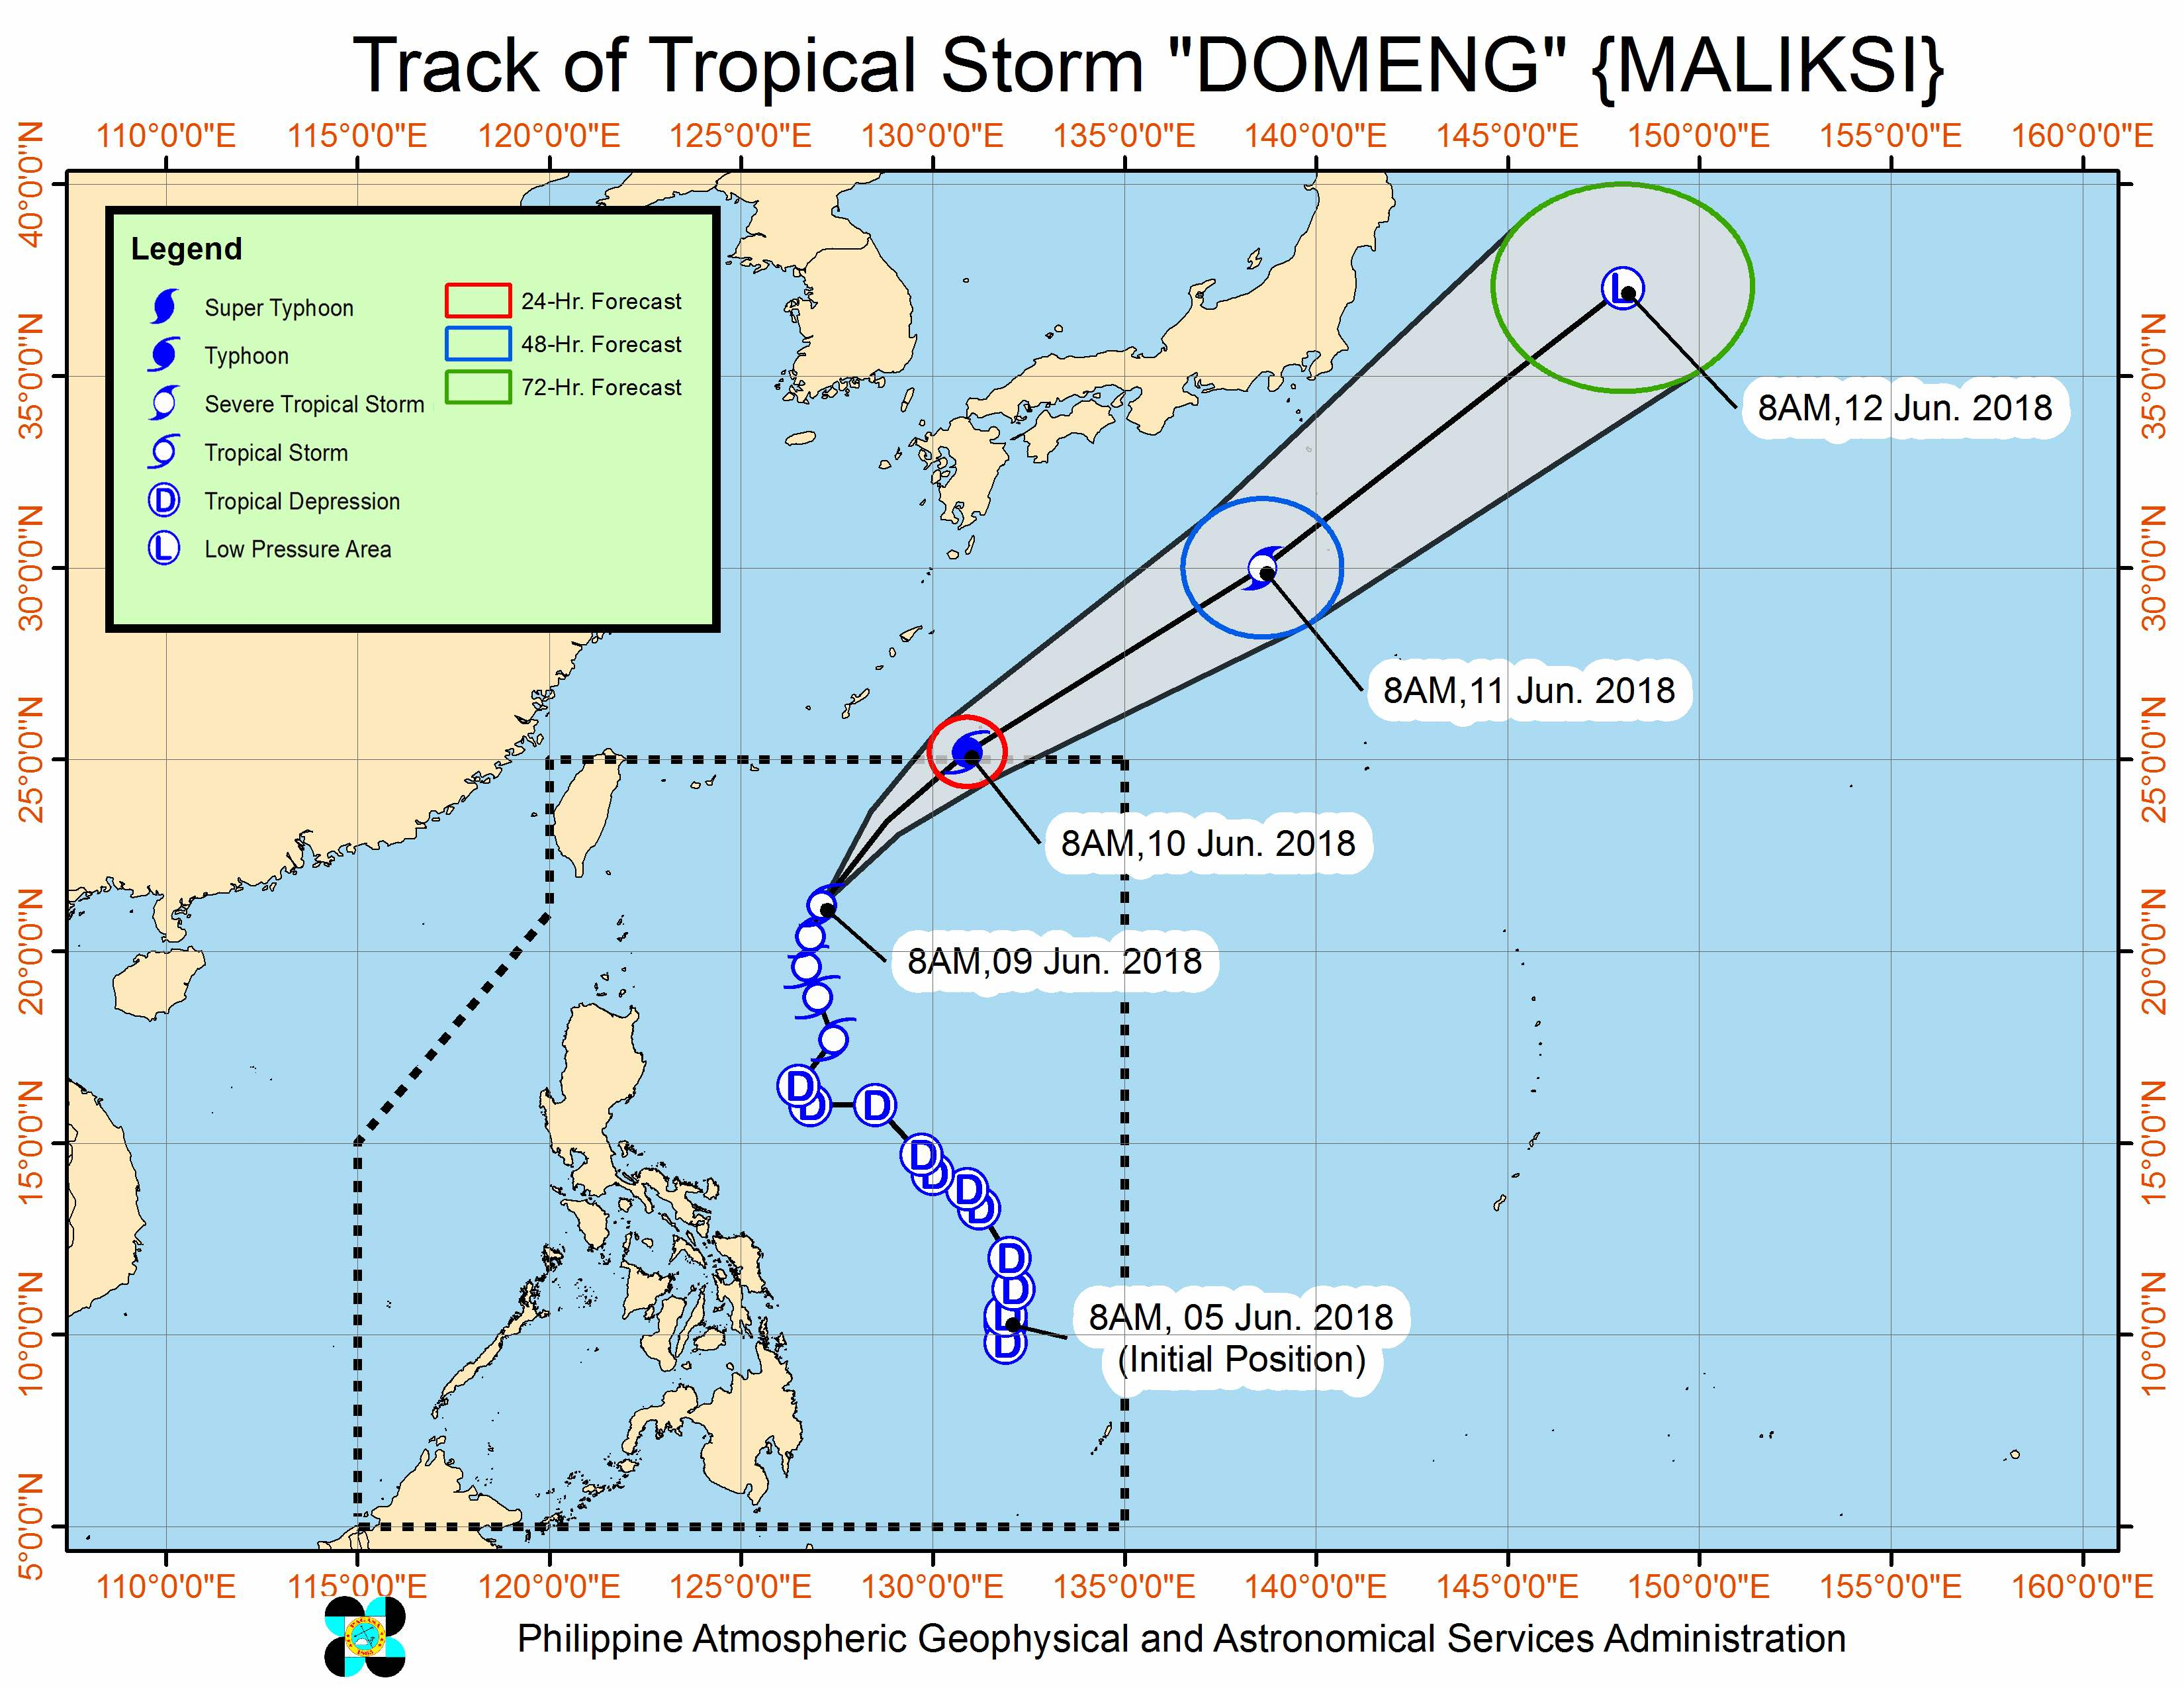 Forecast track of Tropical Storm Domeng (Maliksi) as of June 9, 2018, 11 am. Image courtesy of PAGASA